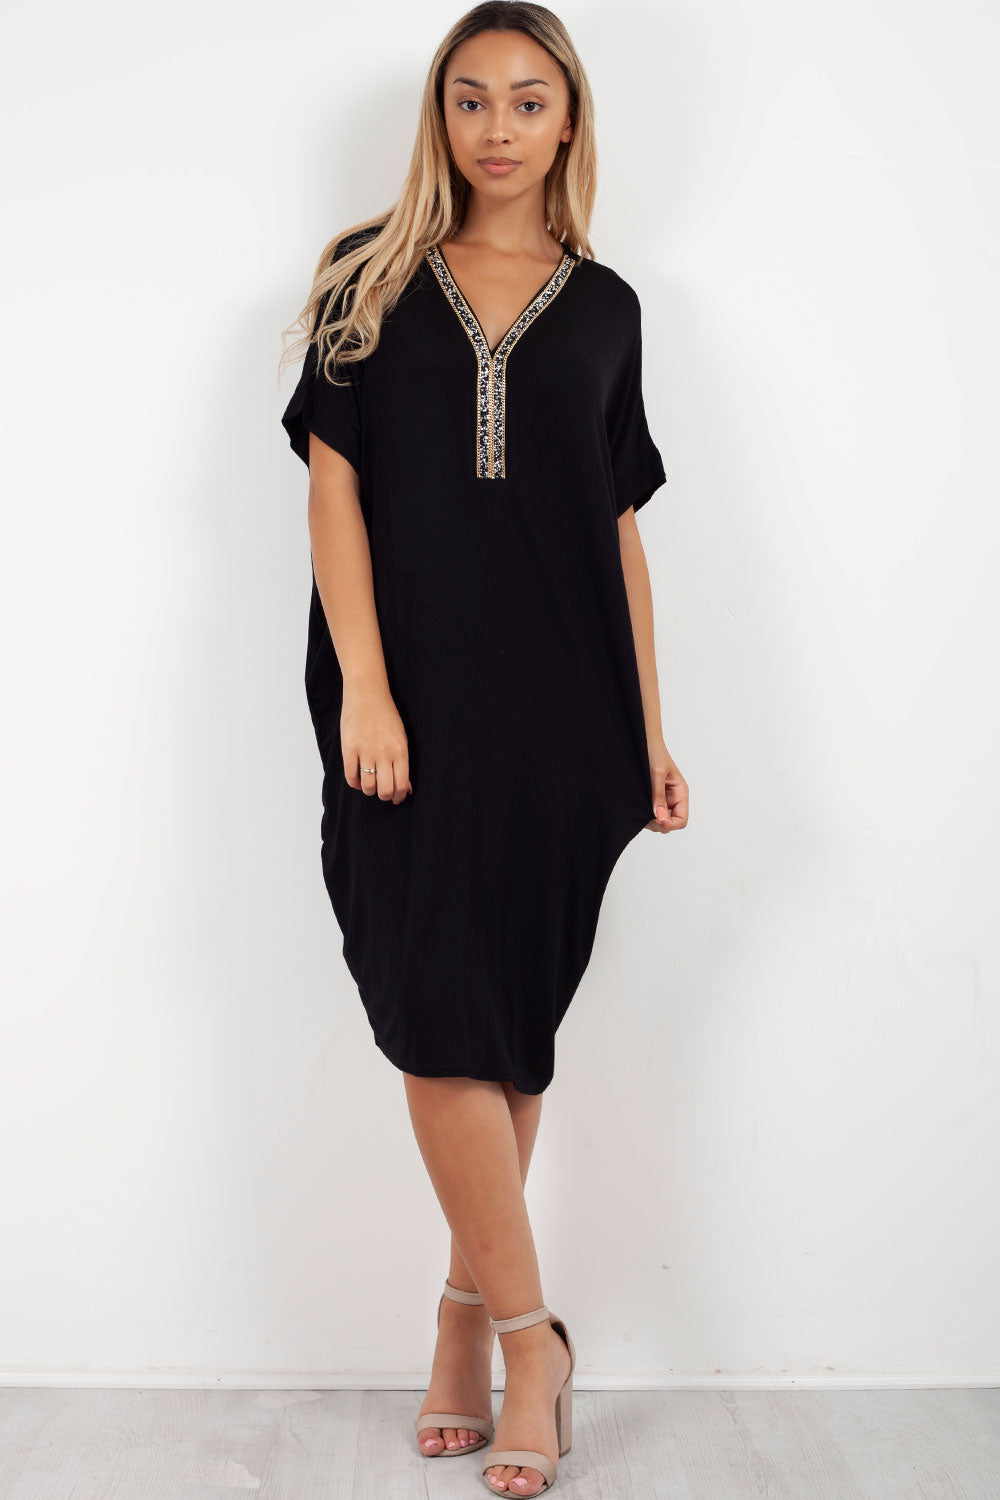 diamante oversized top black